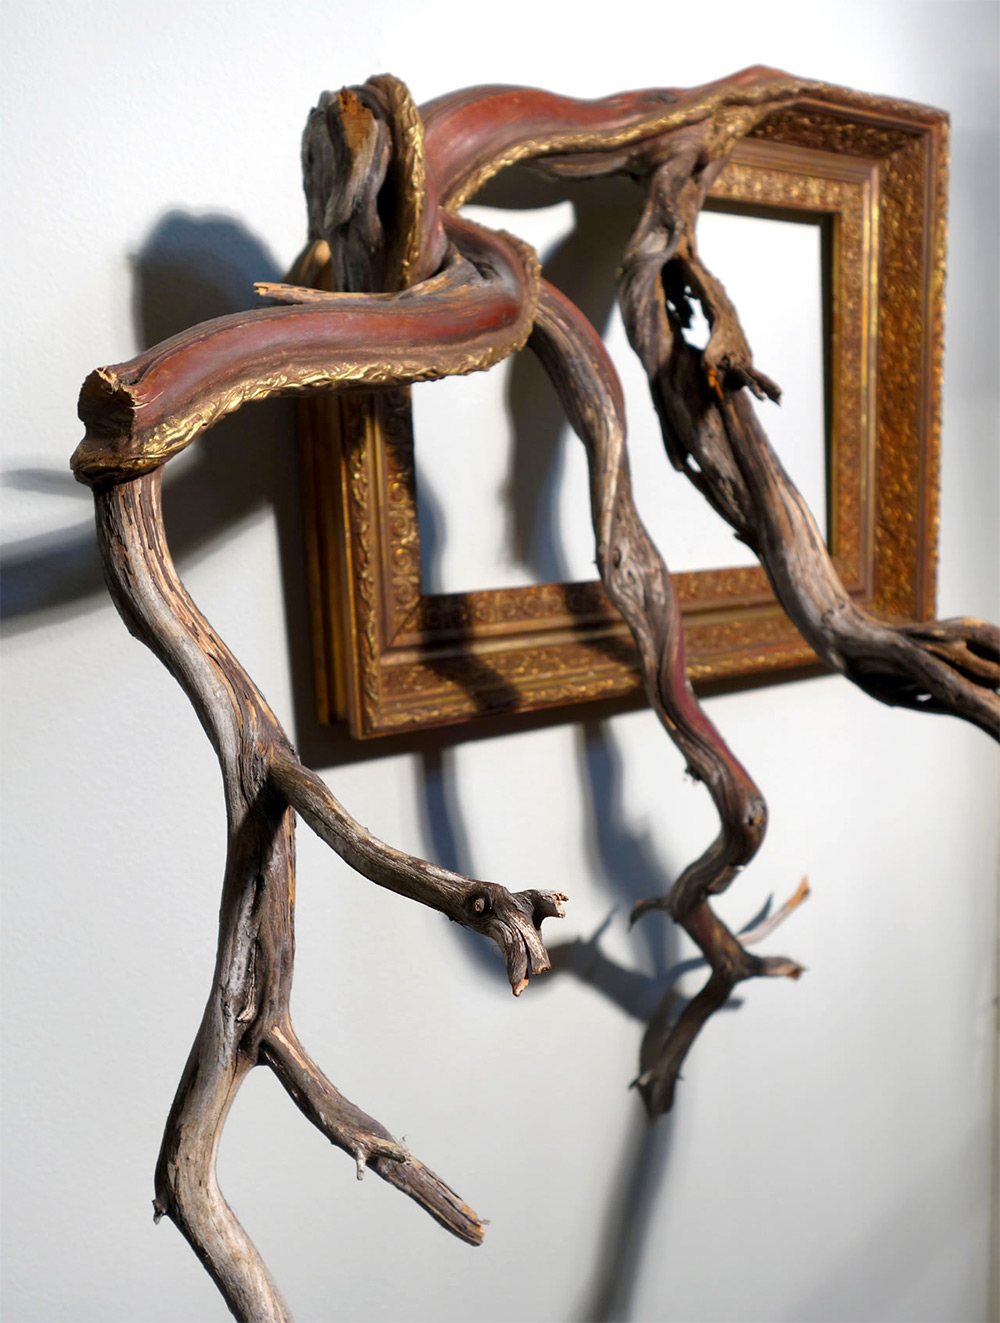 Twisted Tree Branches Fused With Ornate Picture Frames By